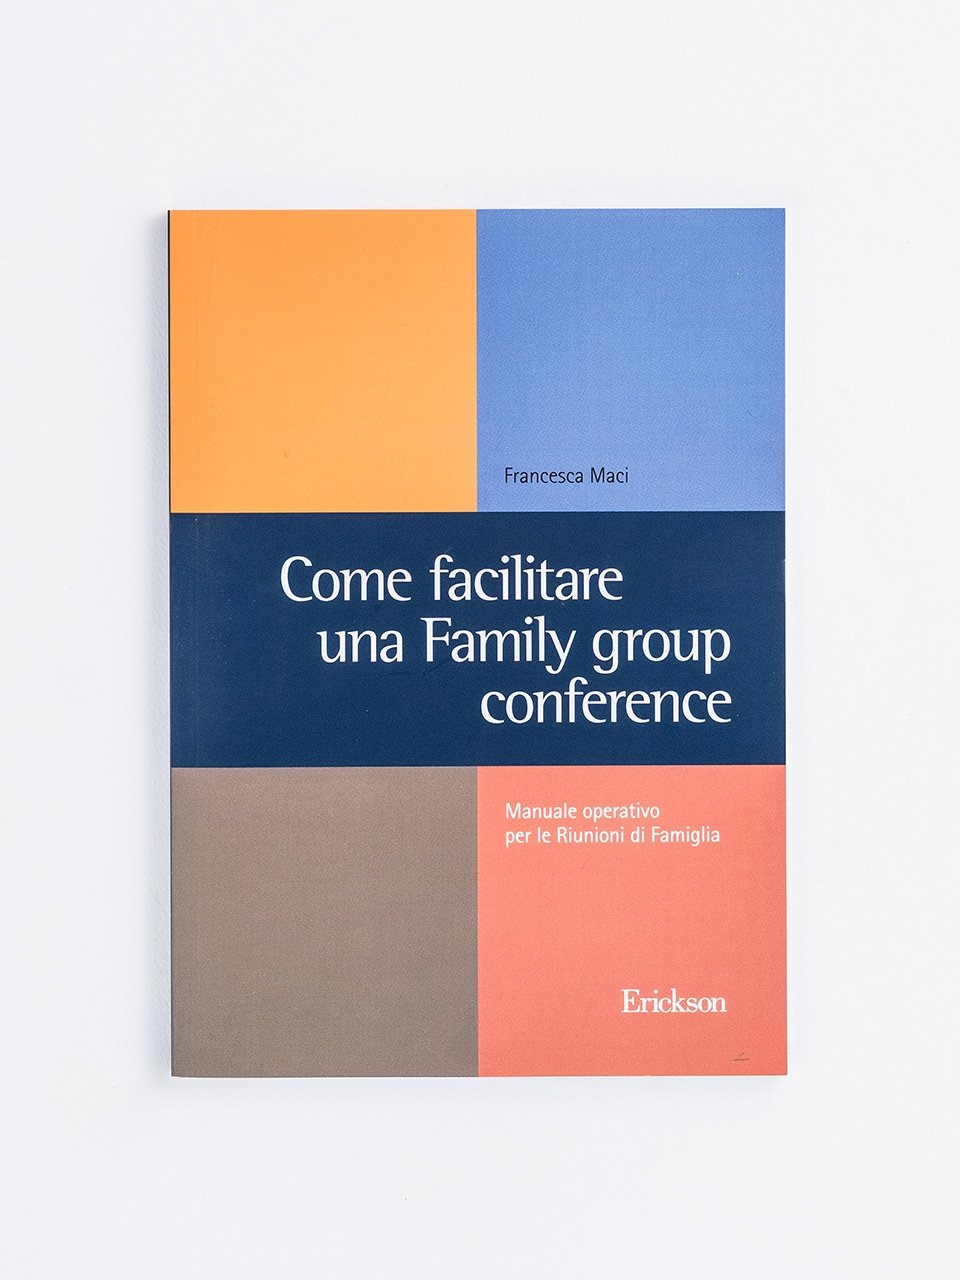 Come facilitare una Family group conference - Le difficoltà ortografiche - Volume 1 - Libri - App e software - Erickson